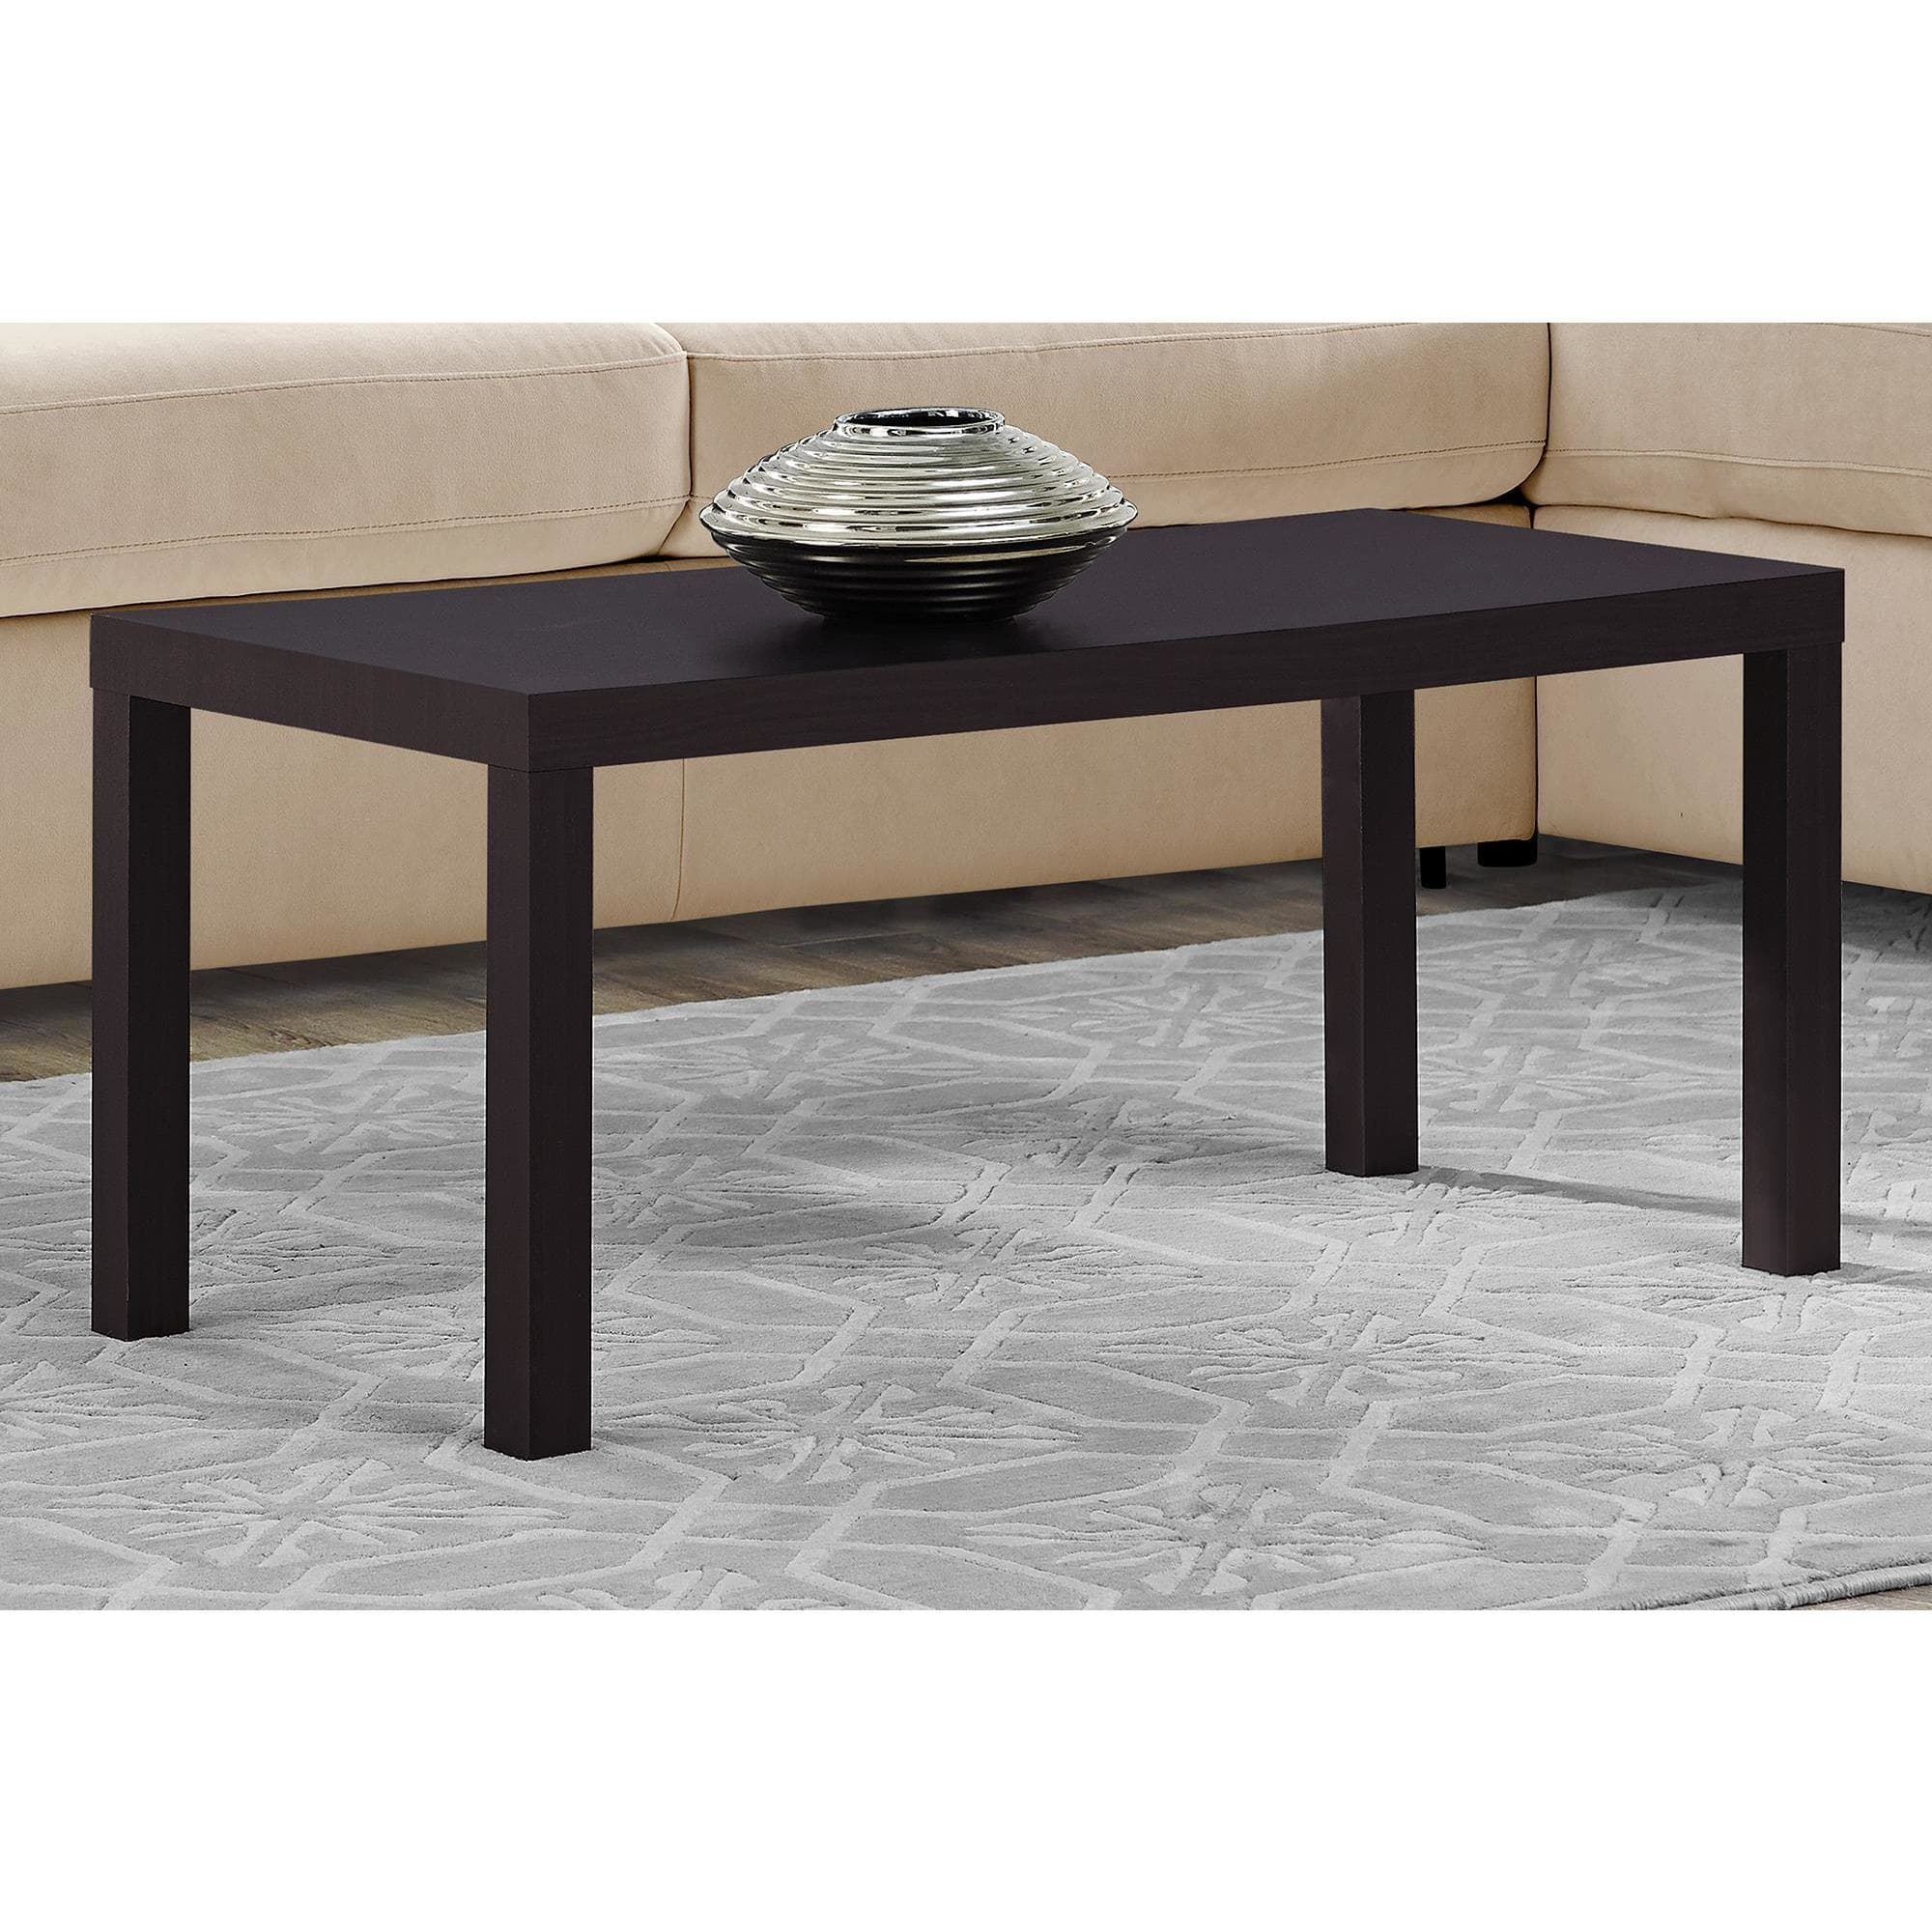 modern parson coffee table white dorel home product target pier porch den wicker park alley free amp crate and barrel west elm room board multiple color black parsons end